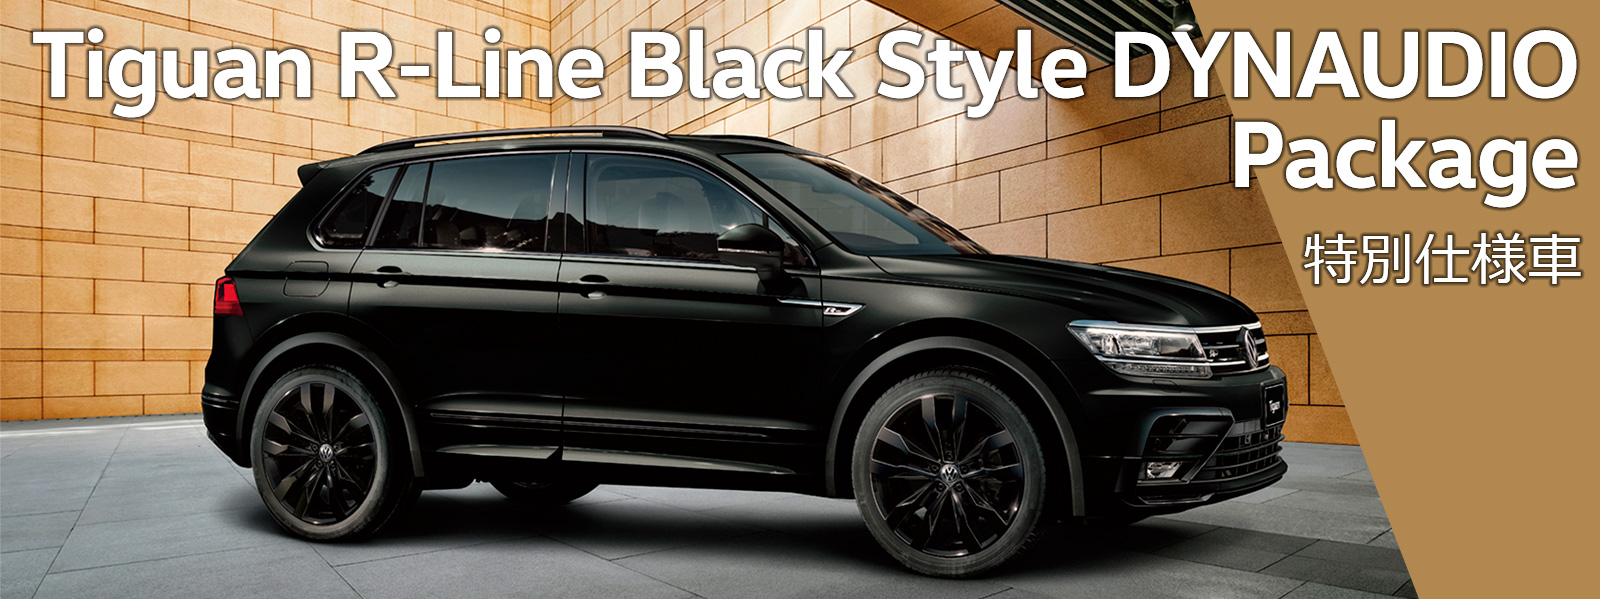 Tiguan R-Line Black Style DYNAUDIO Package